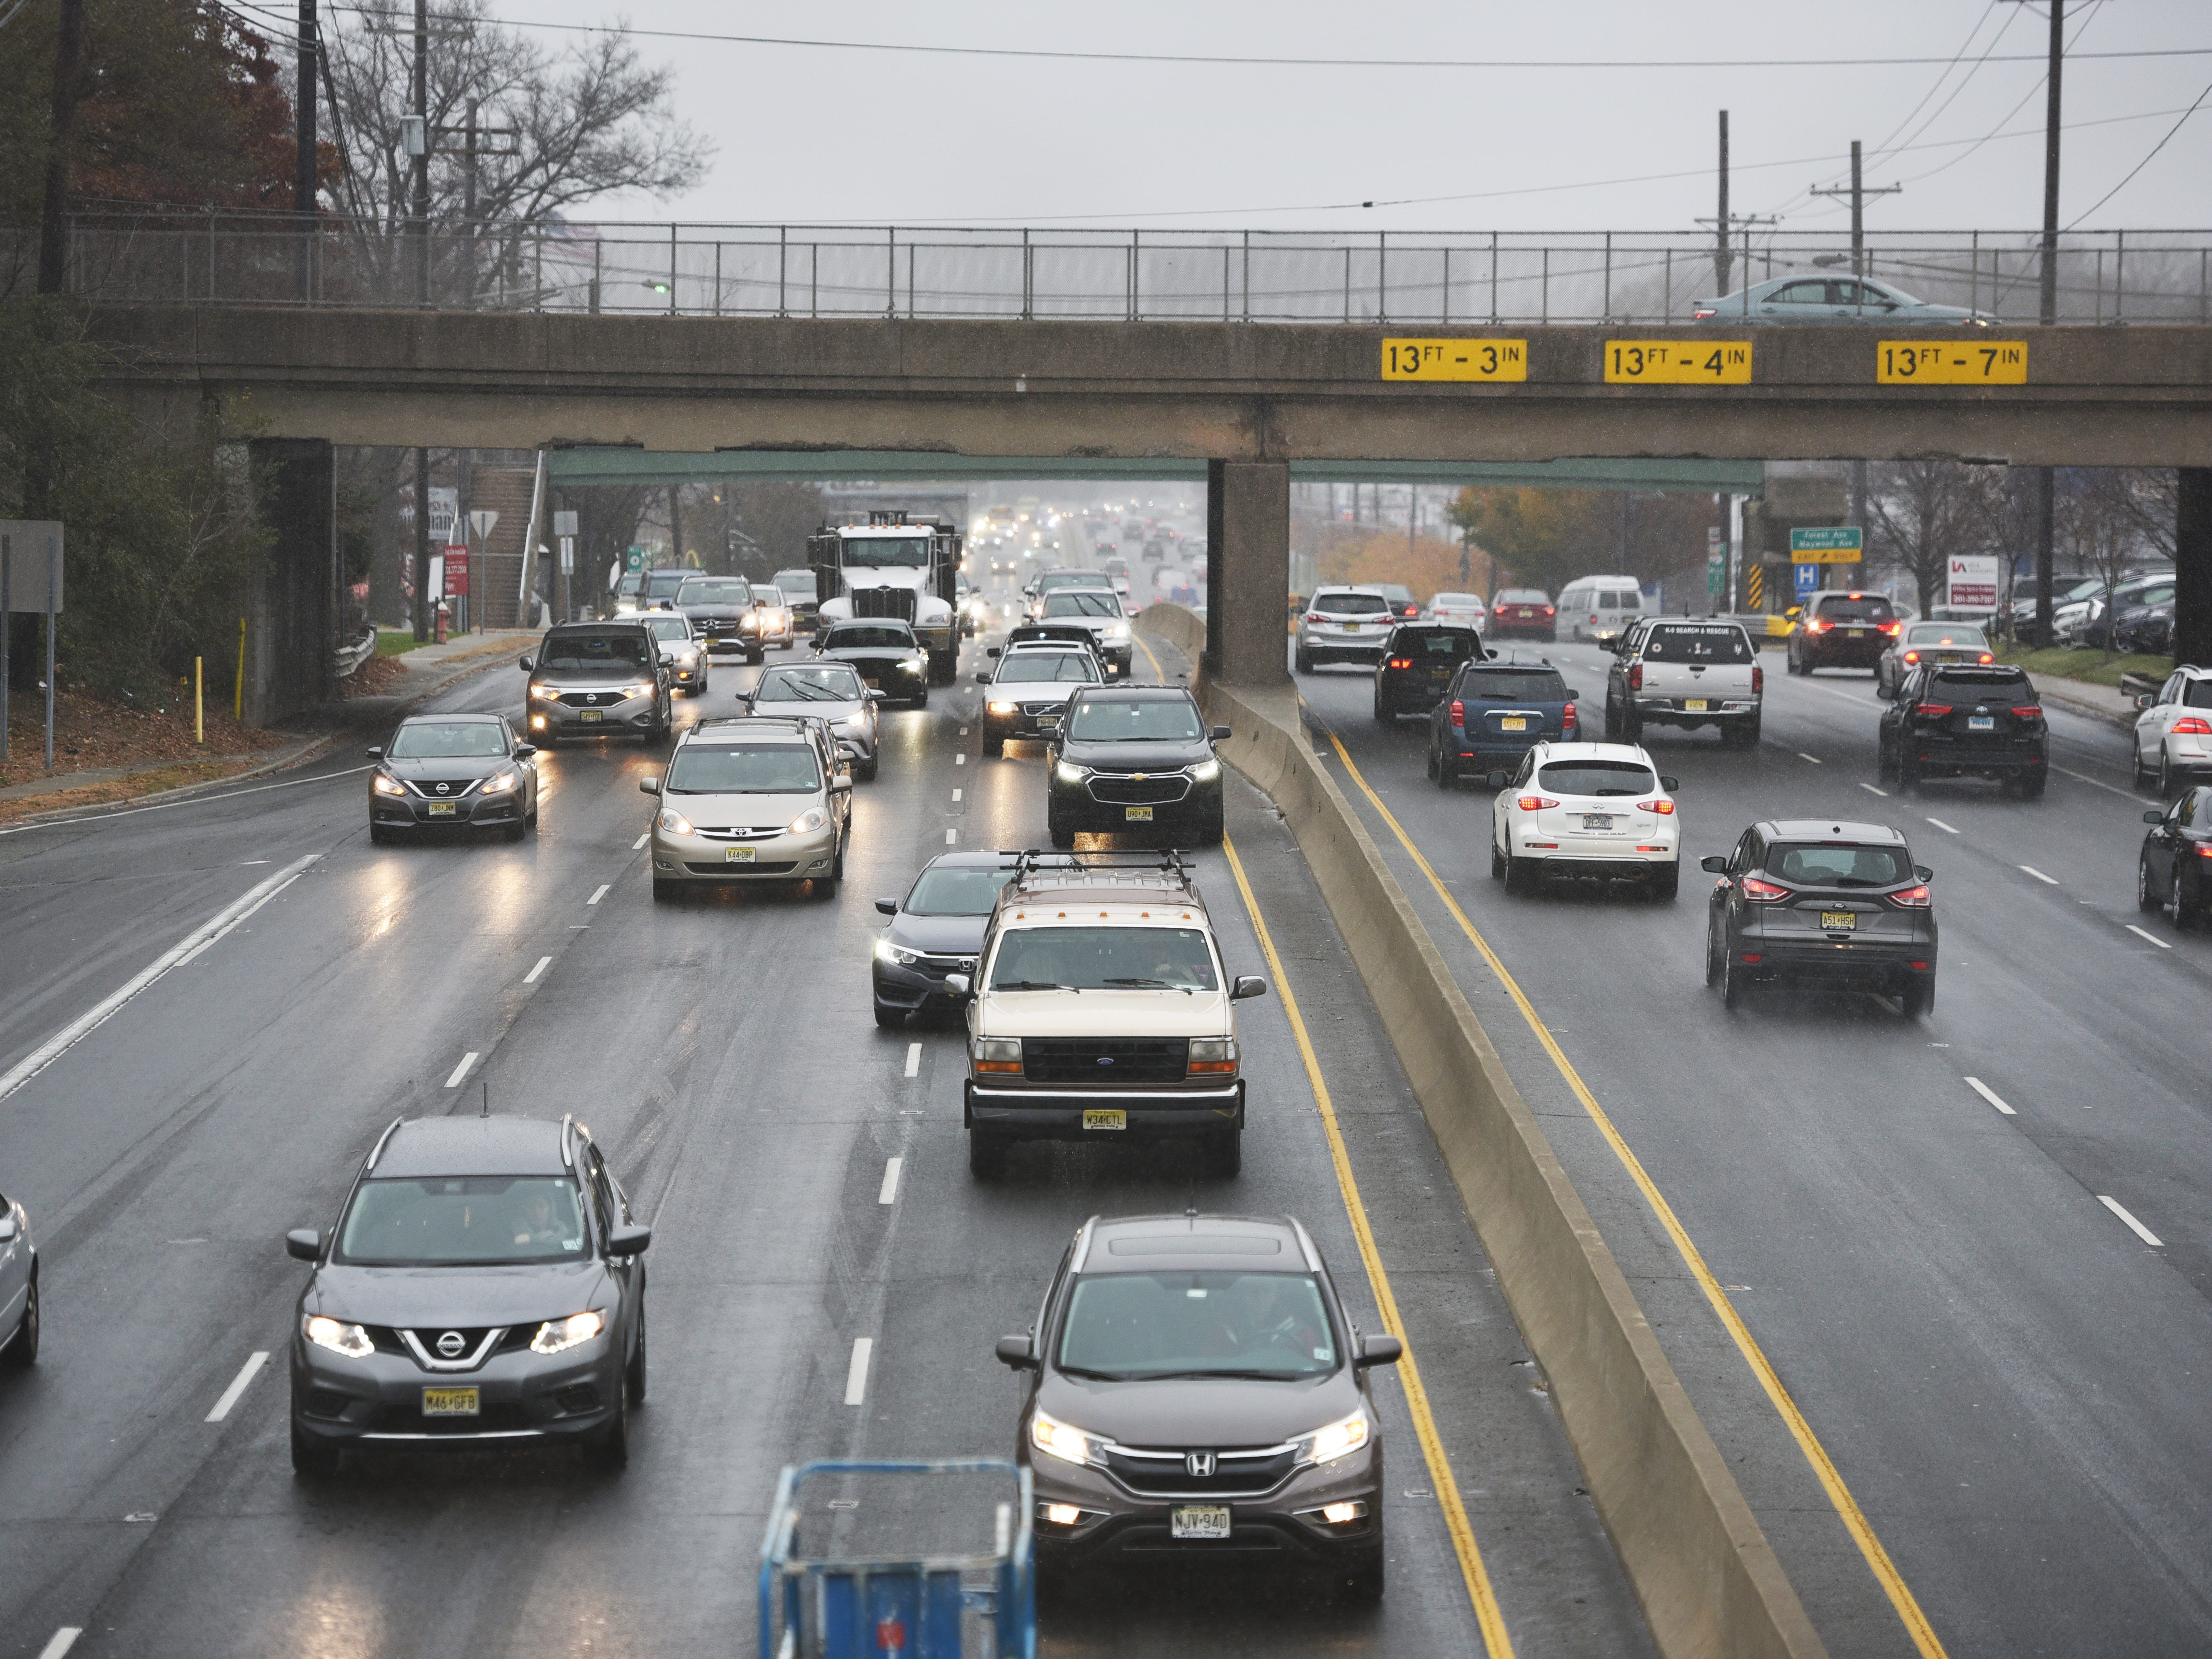 November 15, 2018, Paramus, NJ, USATraffic is seen on Route 4 as the snow begins to fall.